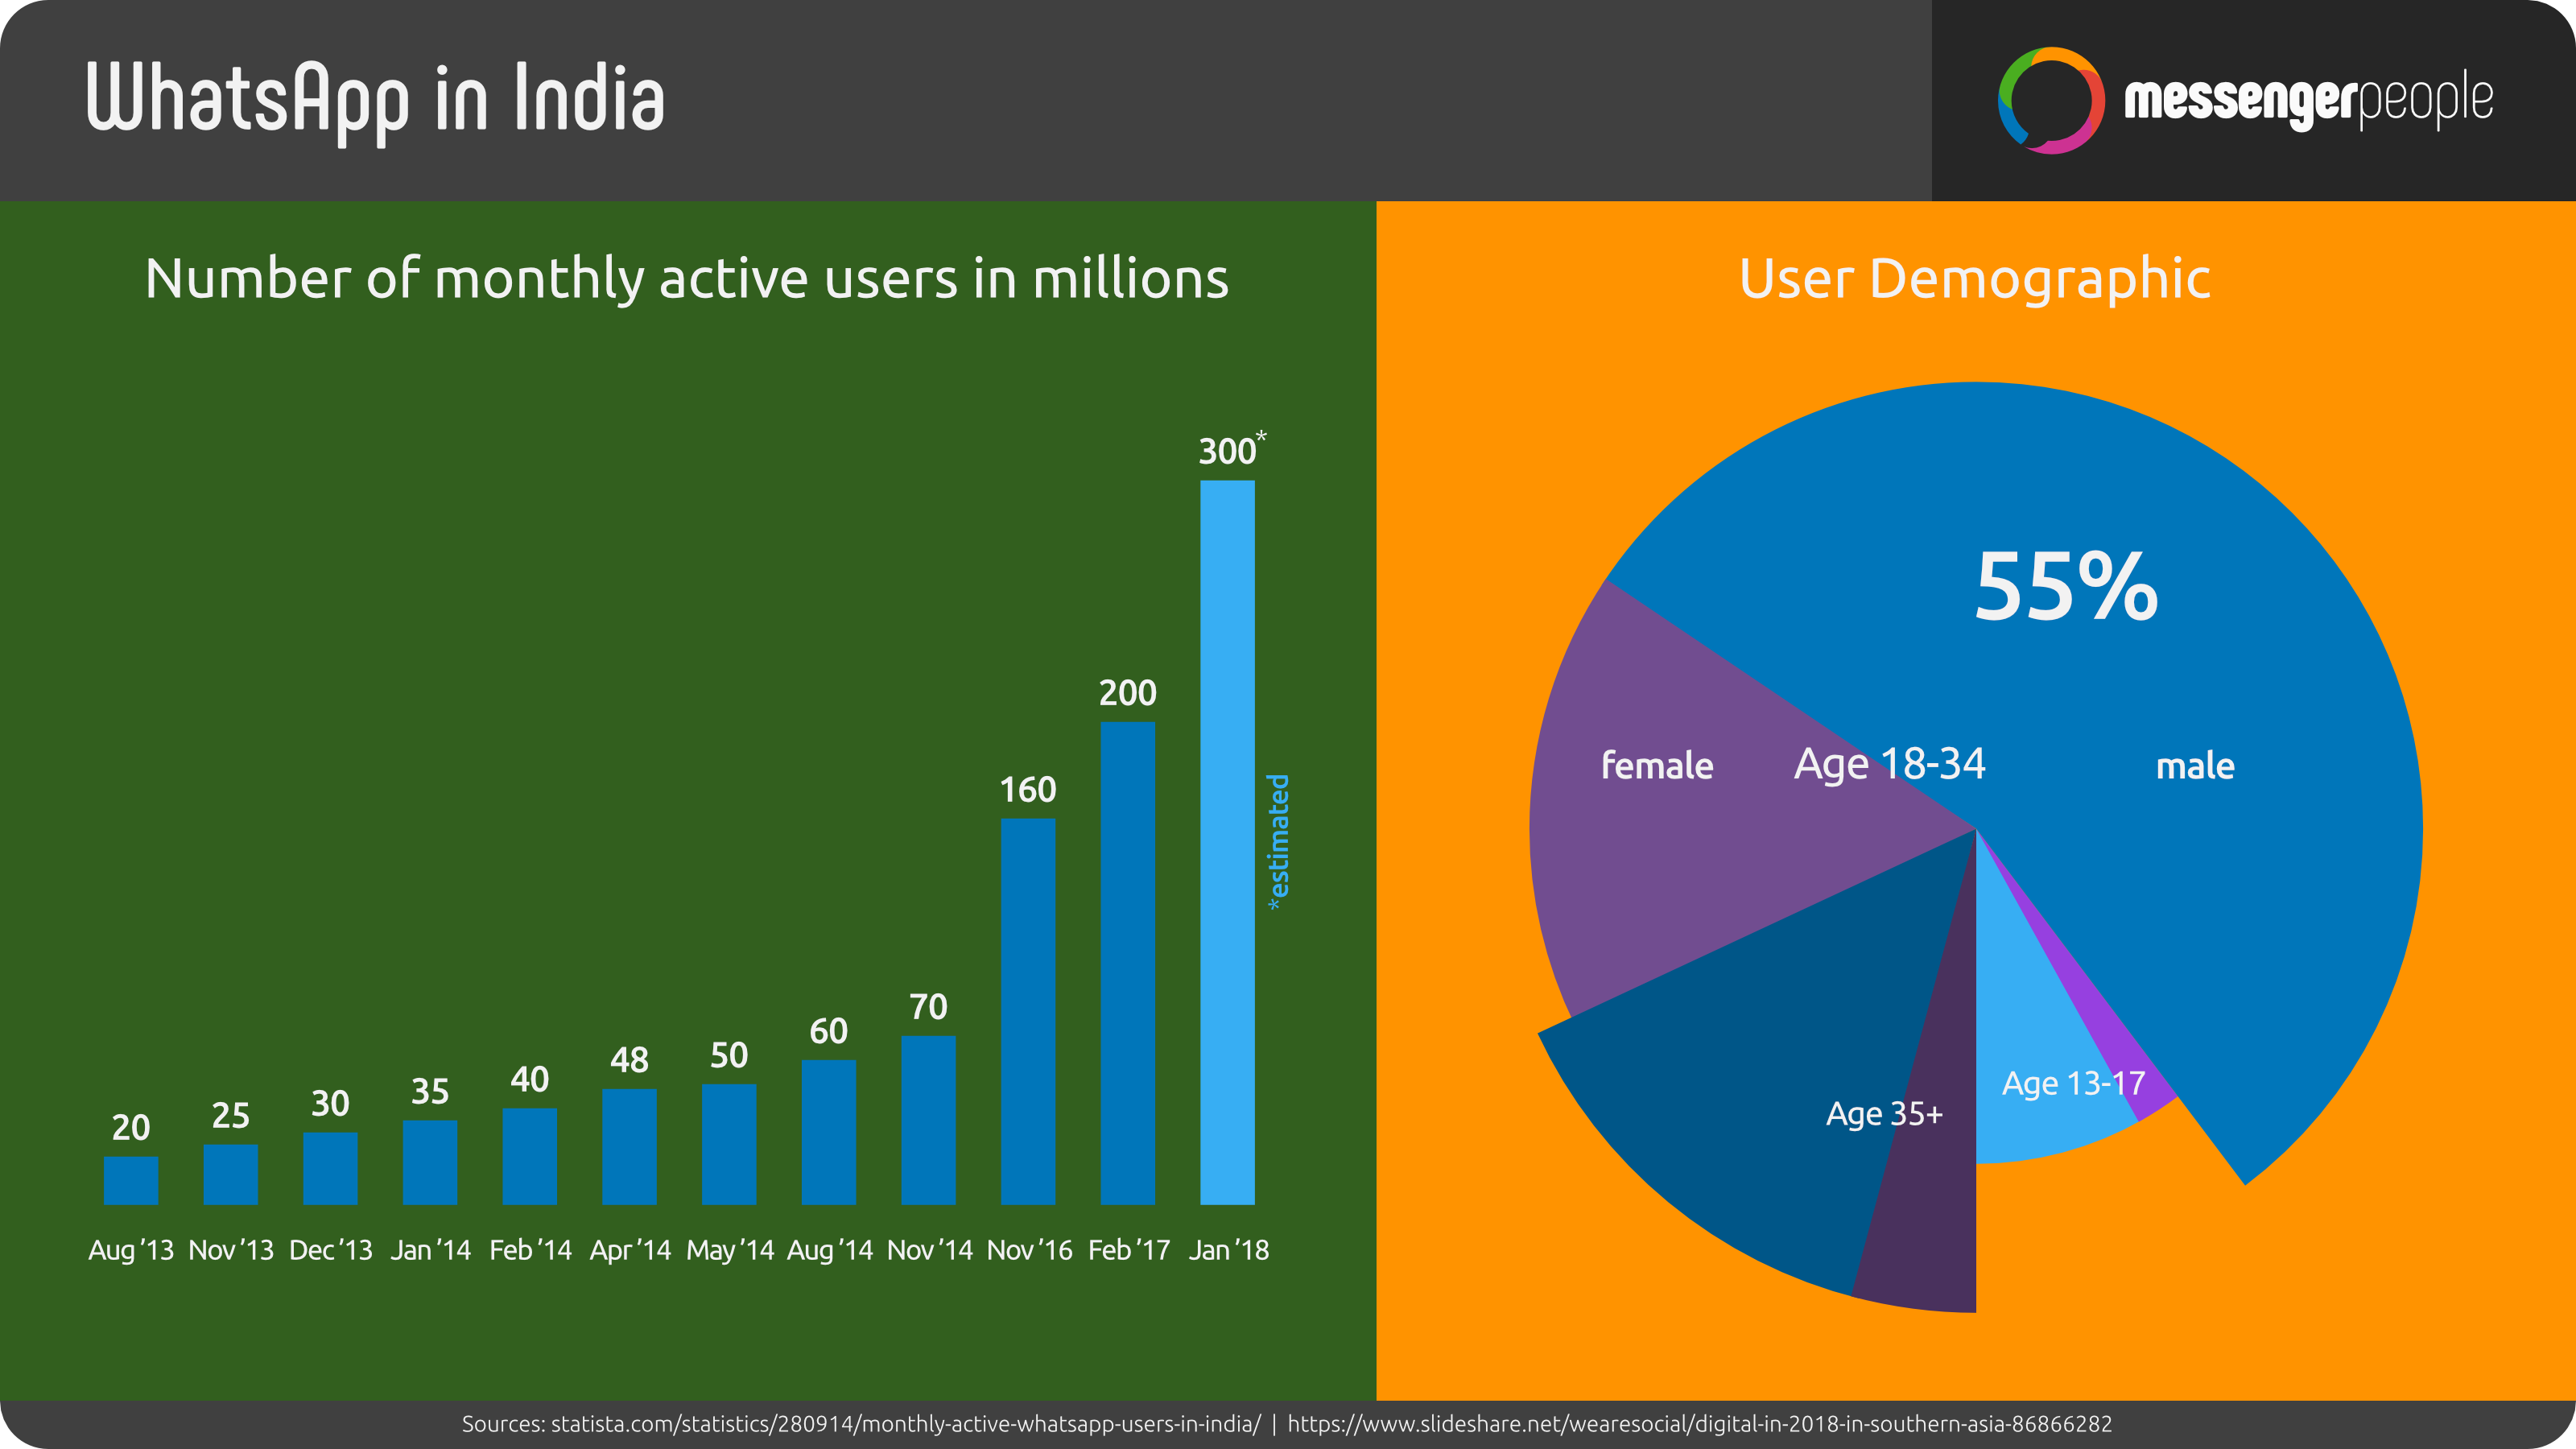 statistic-whatsapp-in-india